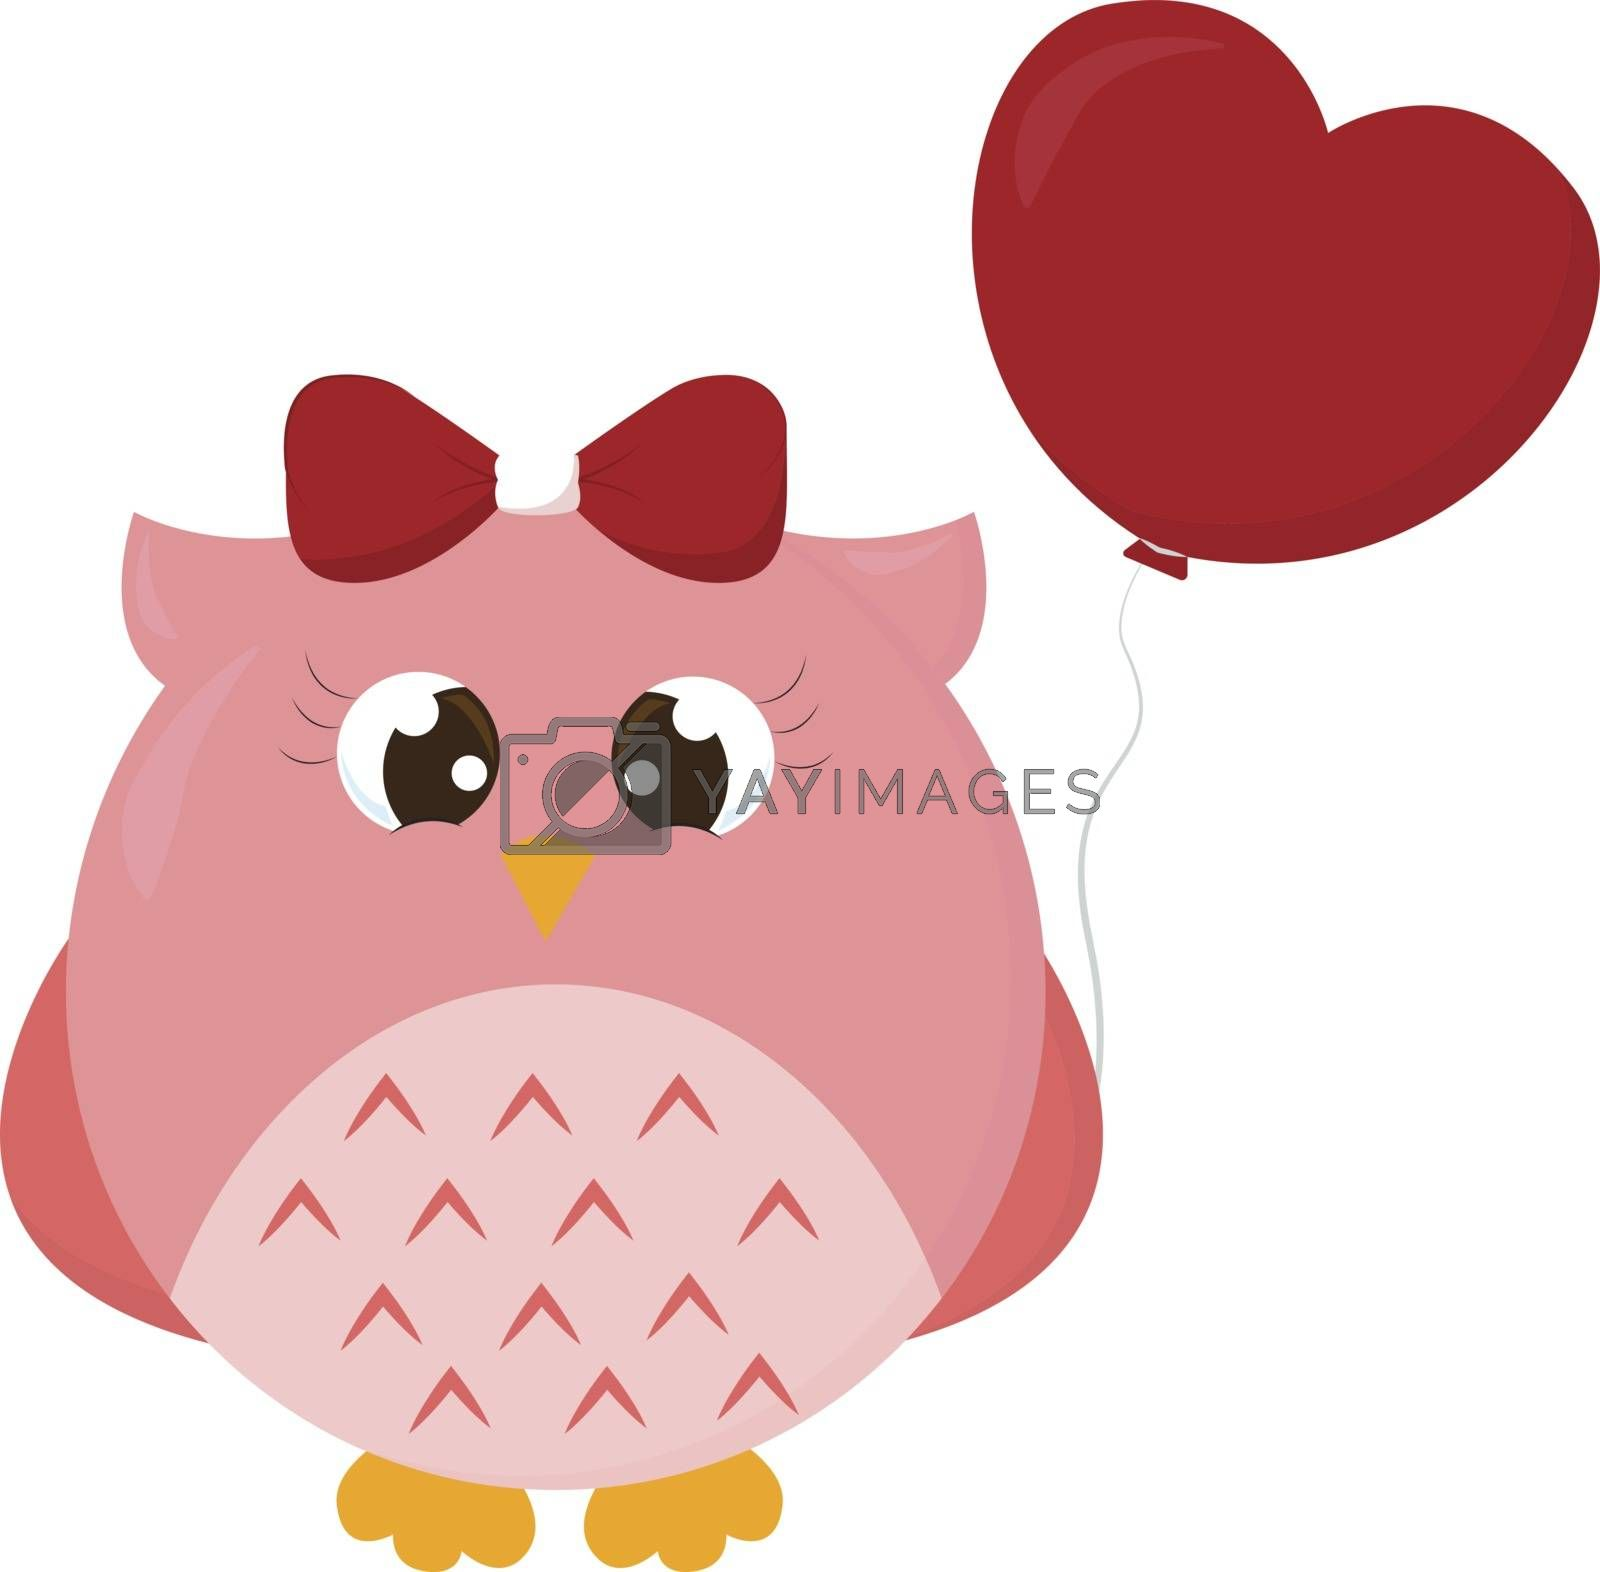 Owl in love, illustration, vector on white background.